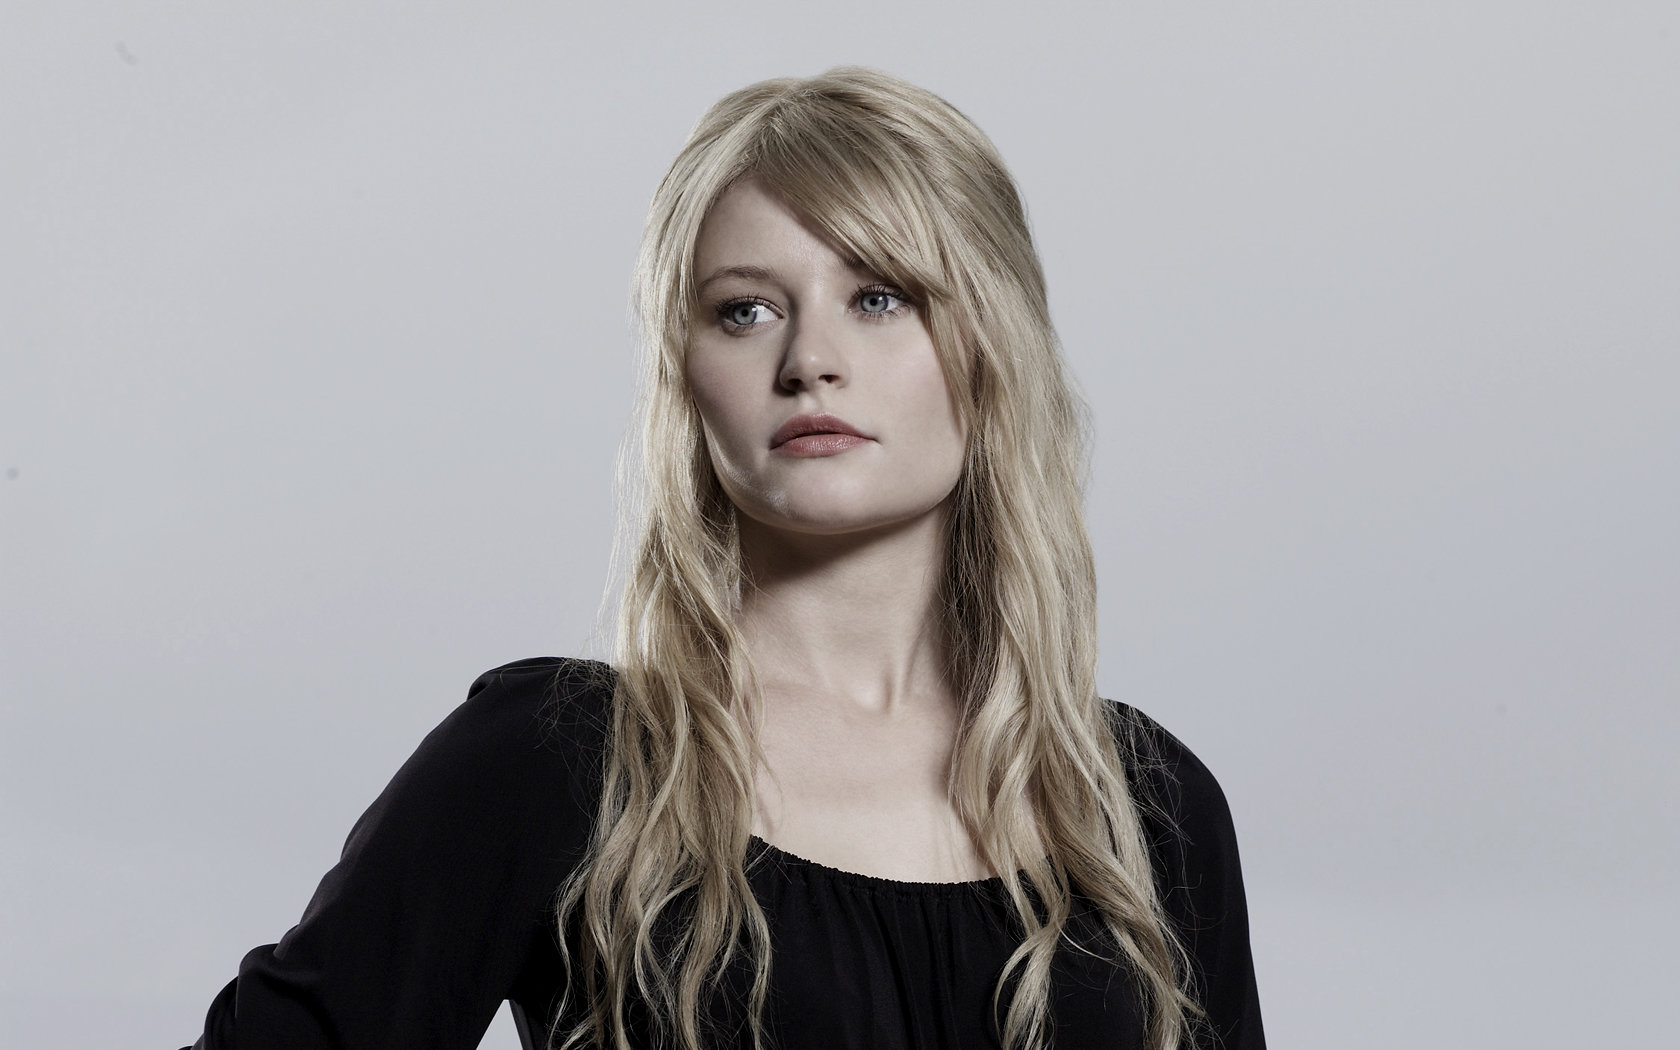 High resolution Emilie De Ravin hd 1680x1050 background ID:232239 for computer